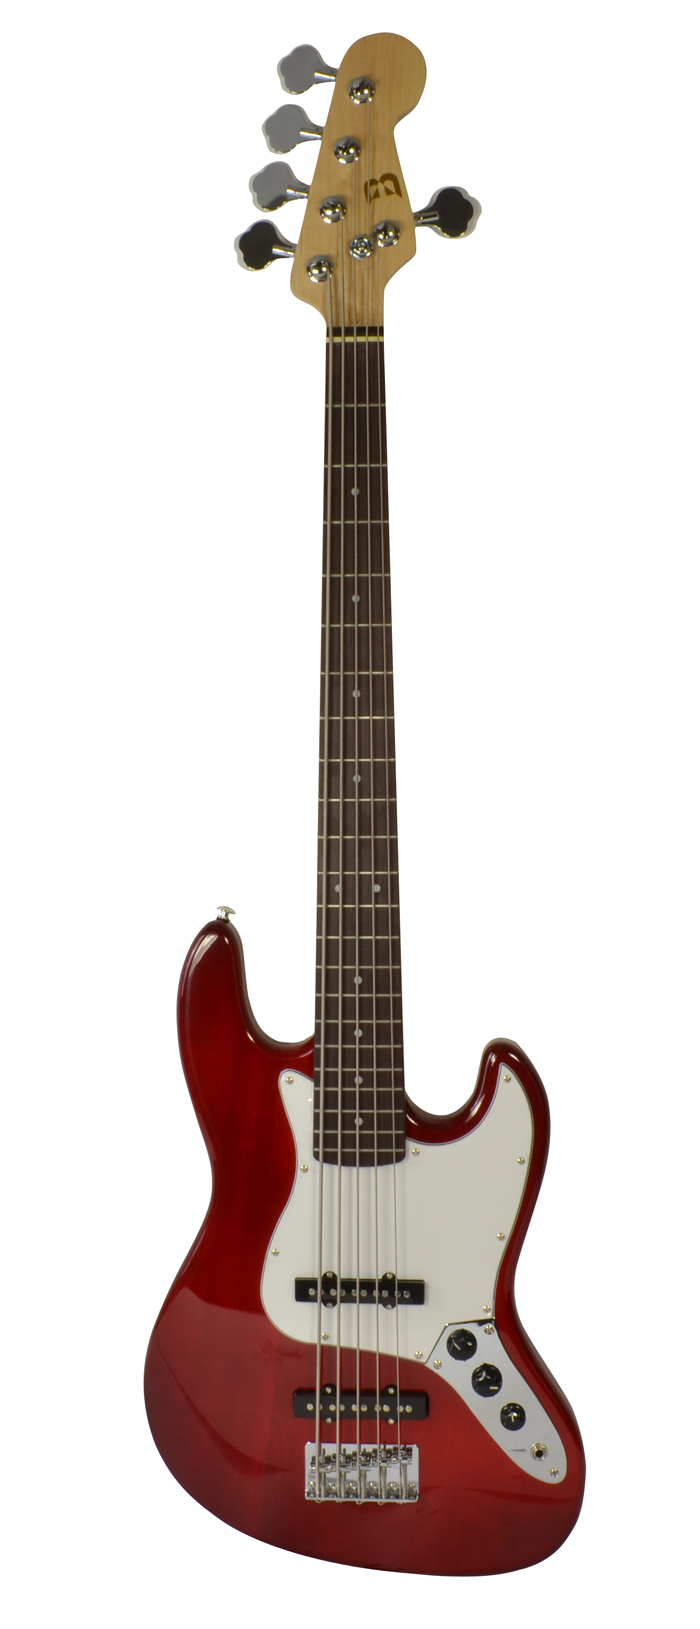 electric bass guitar 5 string by bryce bass guitars. Black Bedroom Furniture Sets. Home Design Ideas